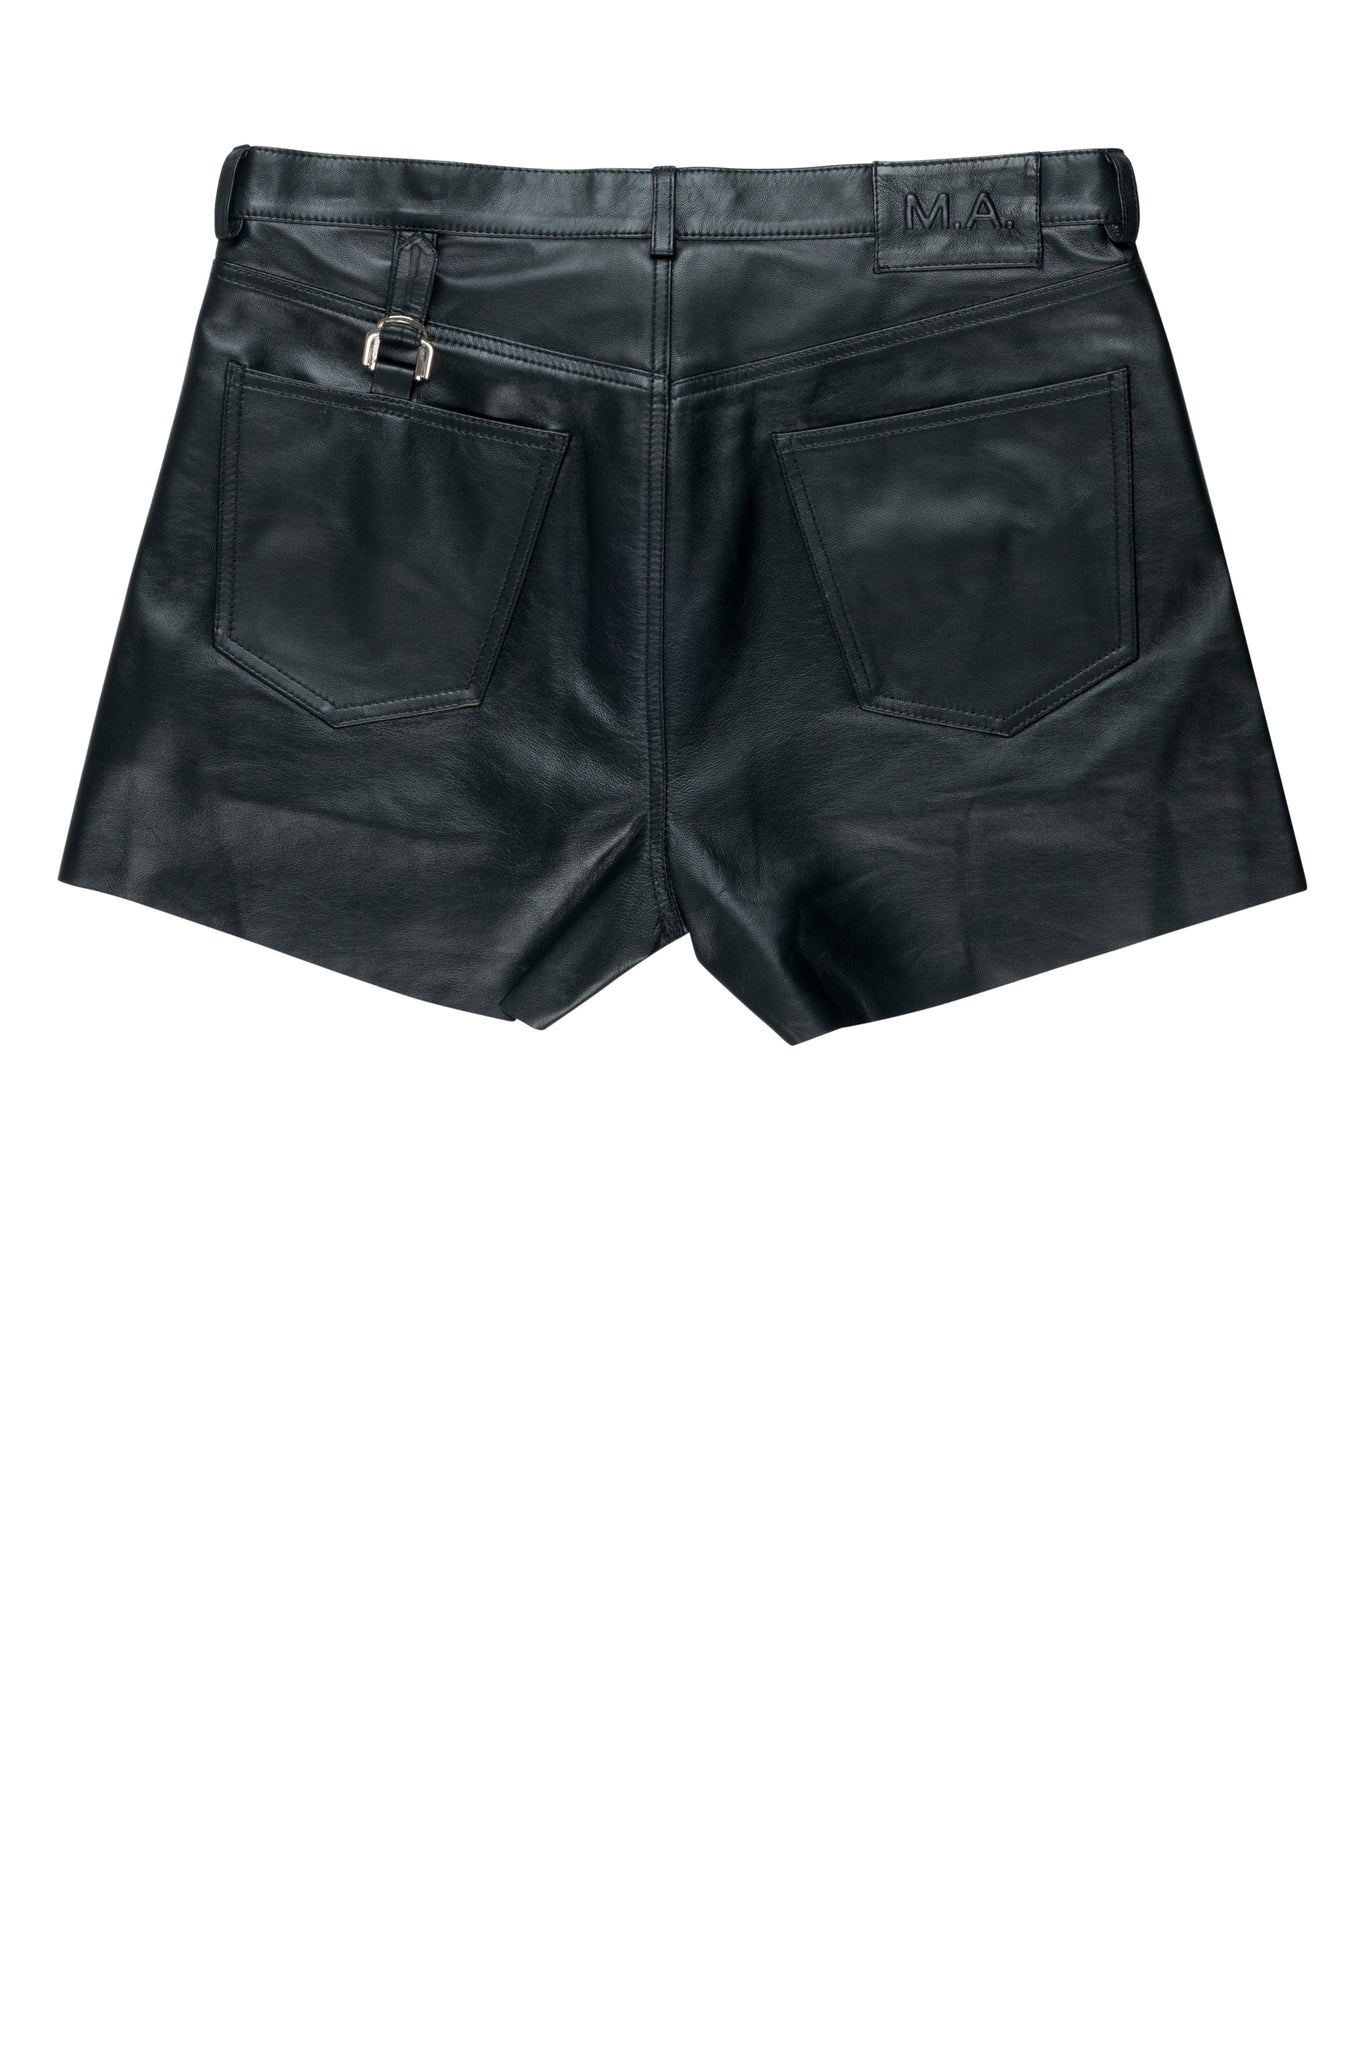 martin asbjørn ma menswear ss20 spring20 napa leather shorts black cinch strap detail